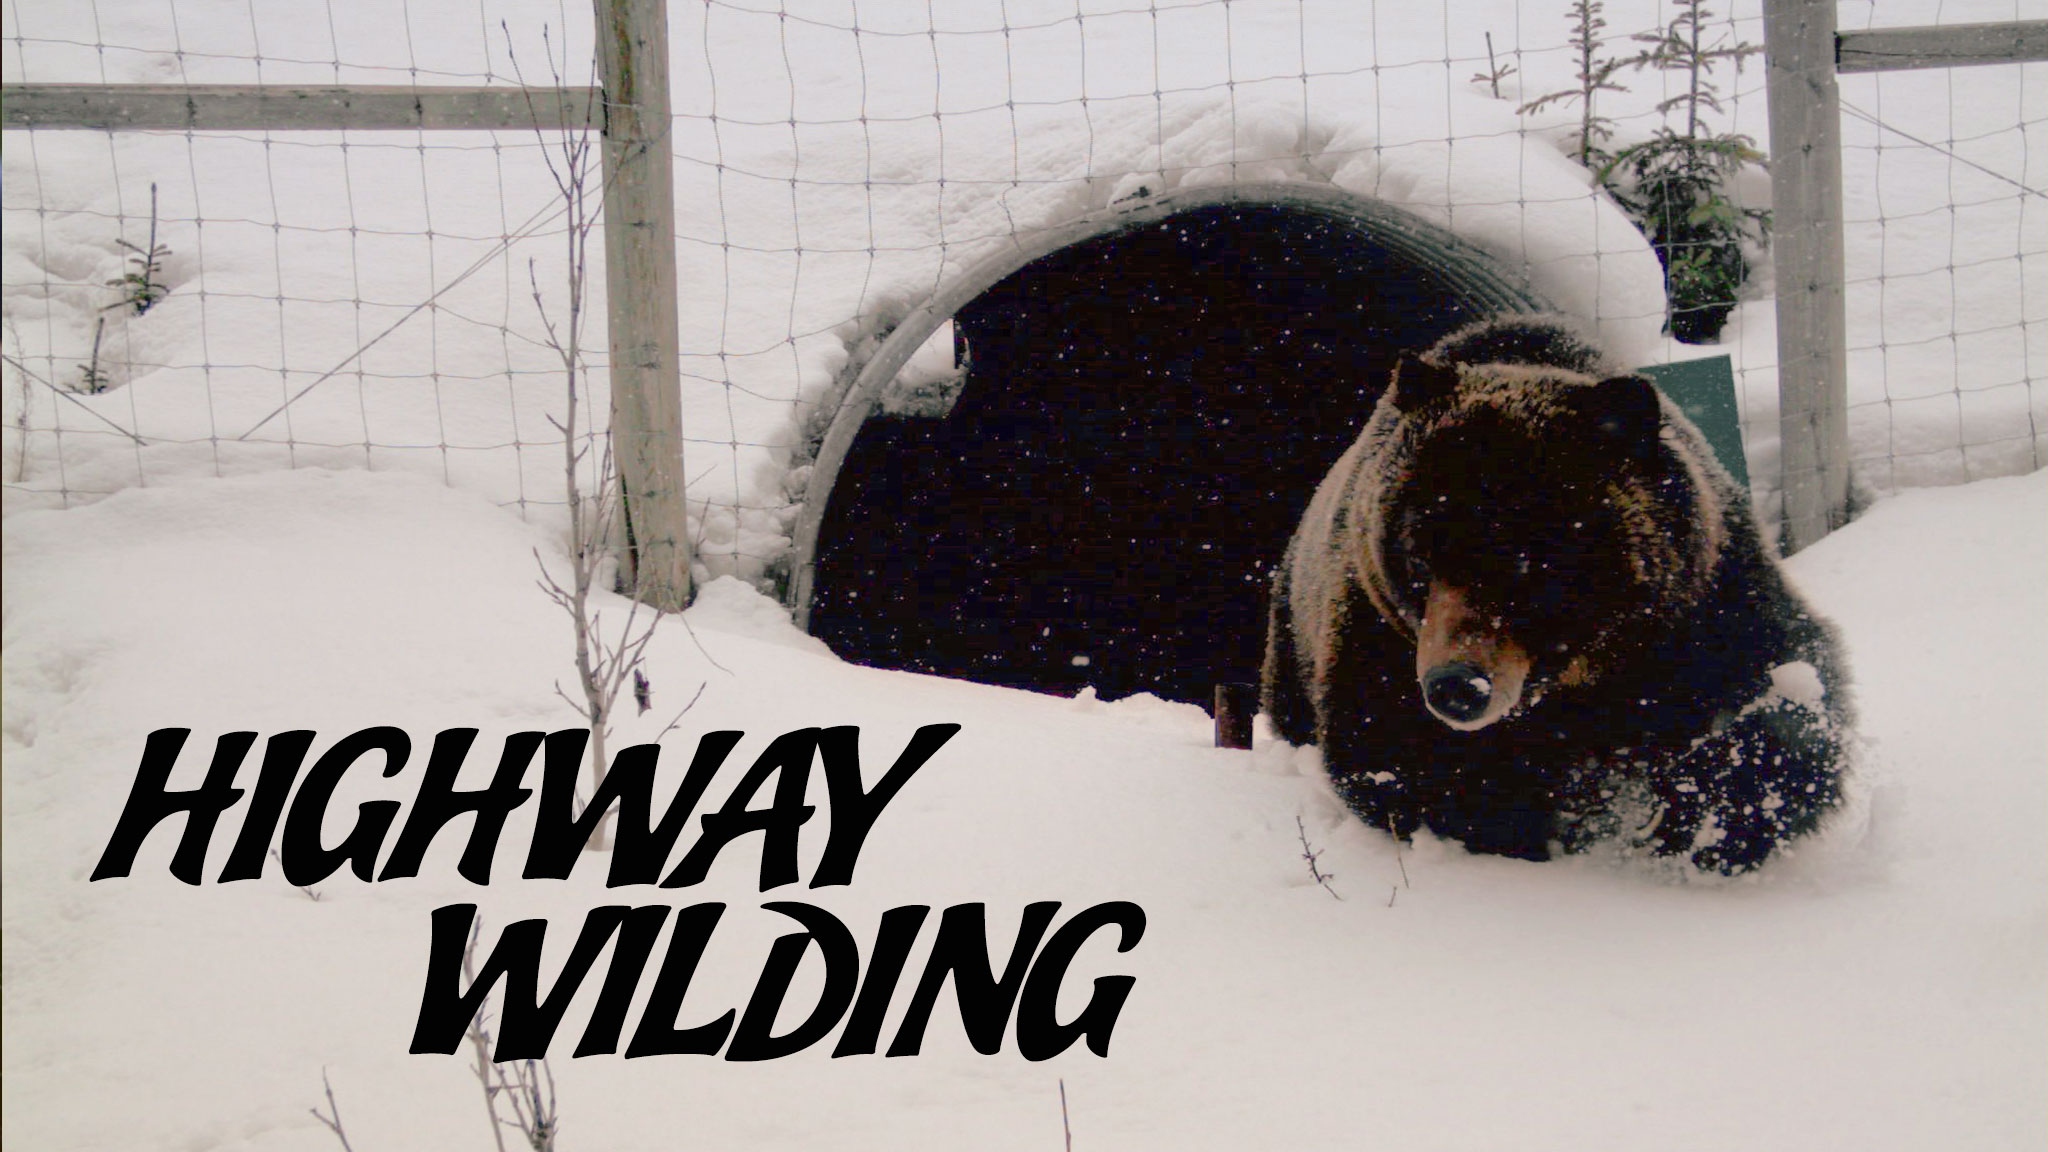 Photo of a brown or black bear crawling out of the man-made tunnel in the snow with the title Highway Wilding that acts as a link to the film page on The Green Channel